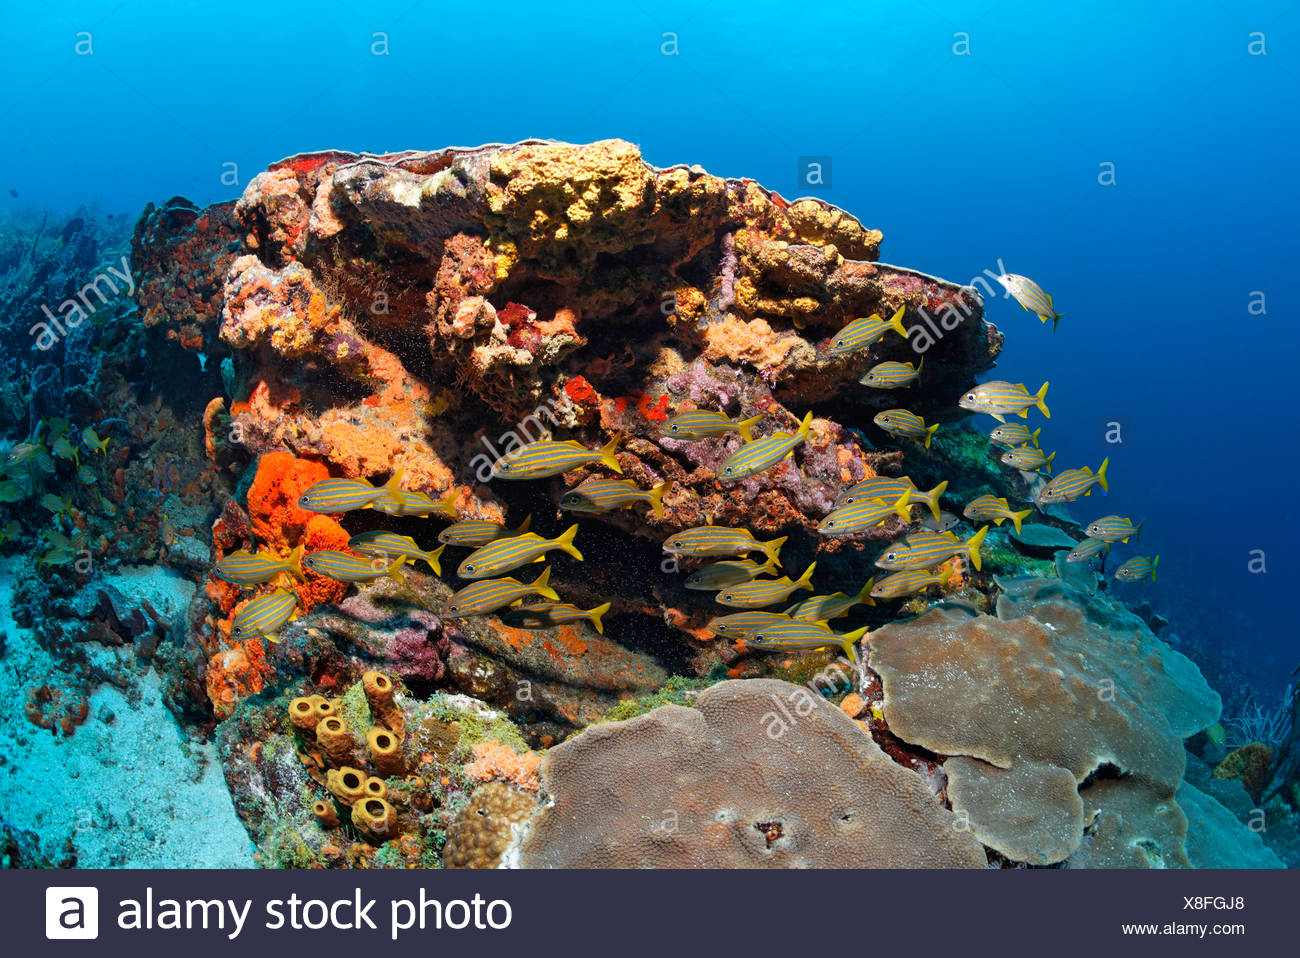 Coral reef, fish, various multicoloured sponges and corals, Smallmouth grunt (Haemulon chrysargyreum), Little Tobago, Speyside - Stock Image